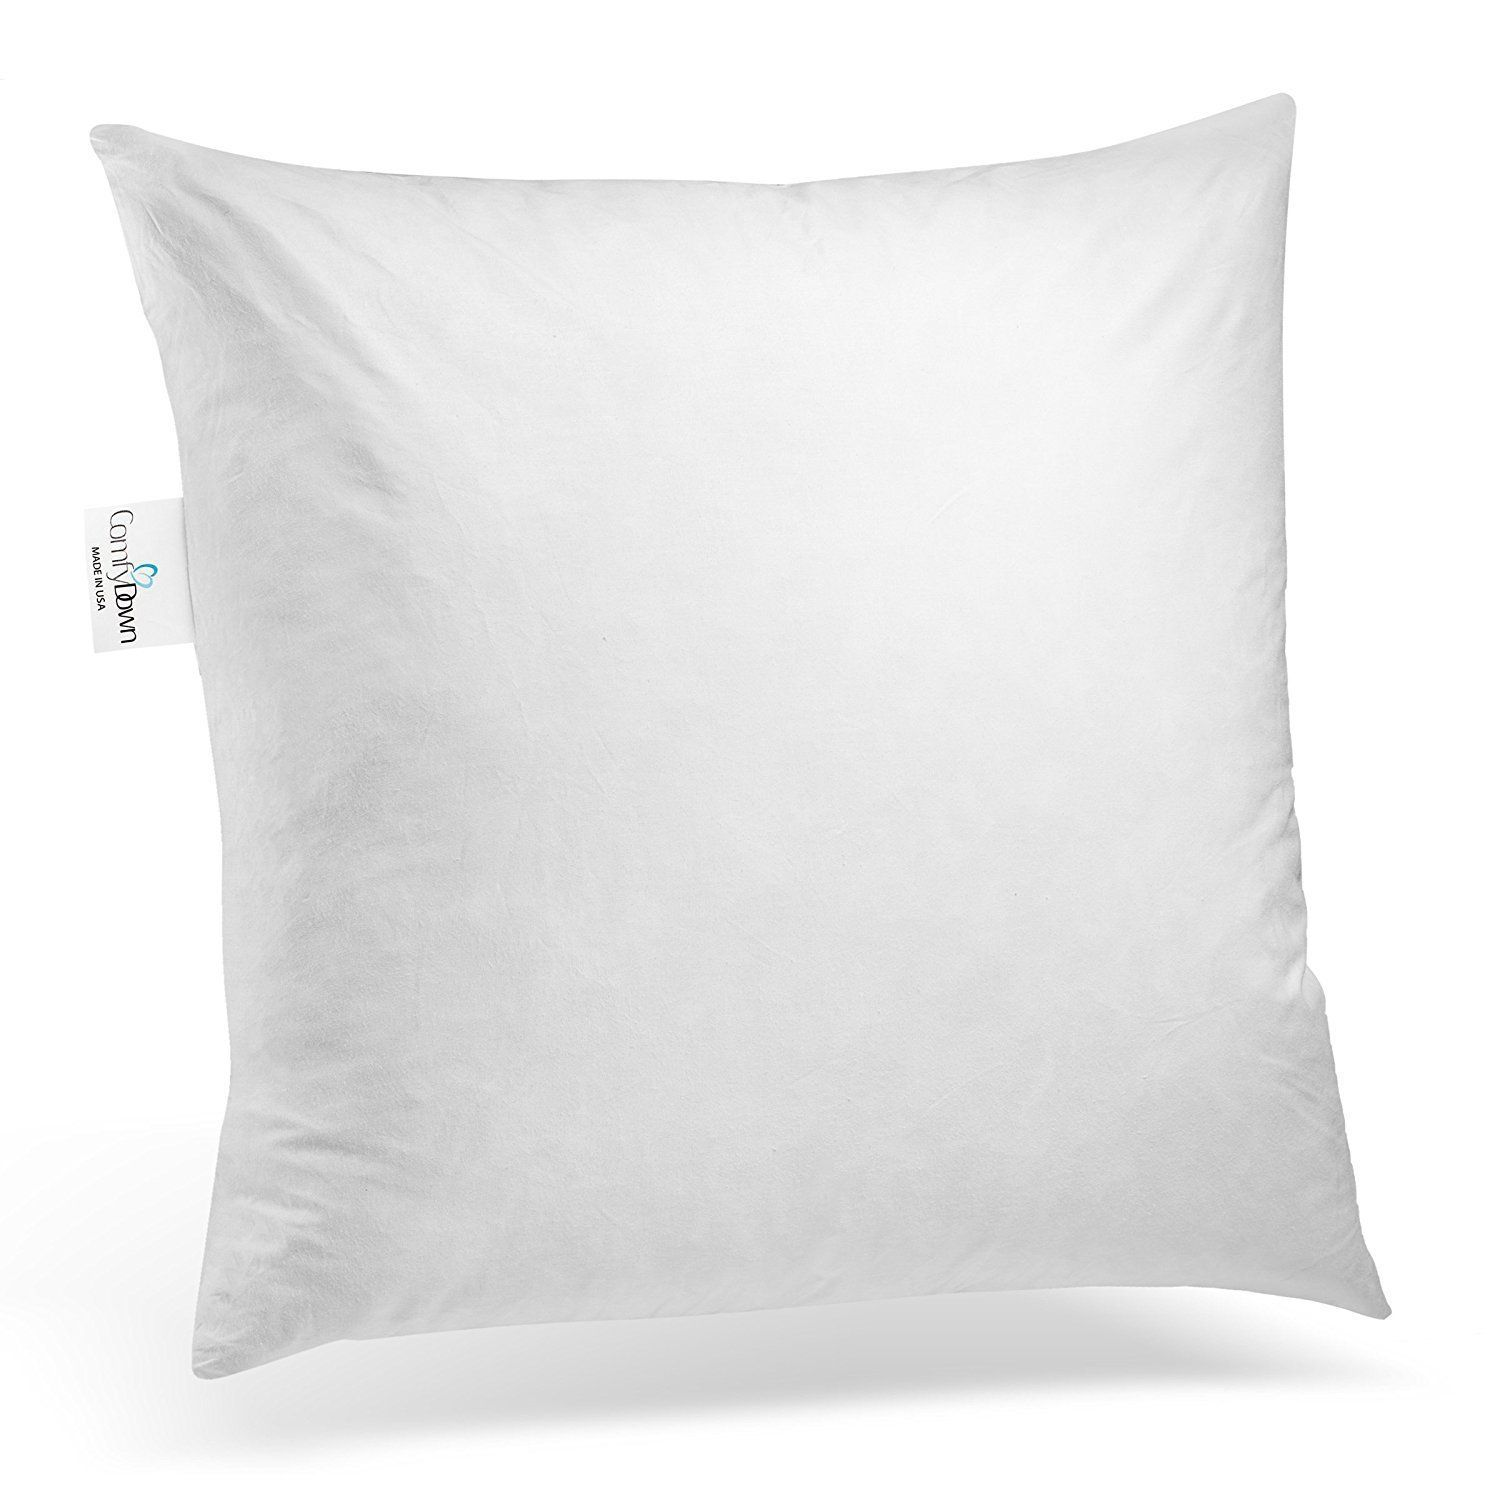 28X28 Pillow Insert Comfydown 95% Feather 5% Down 28 X 28 Square Decorative Pillow